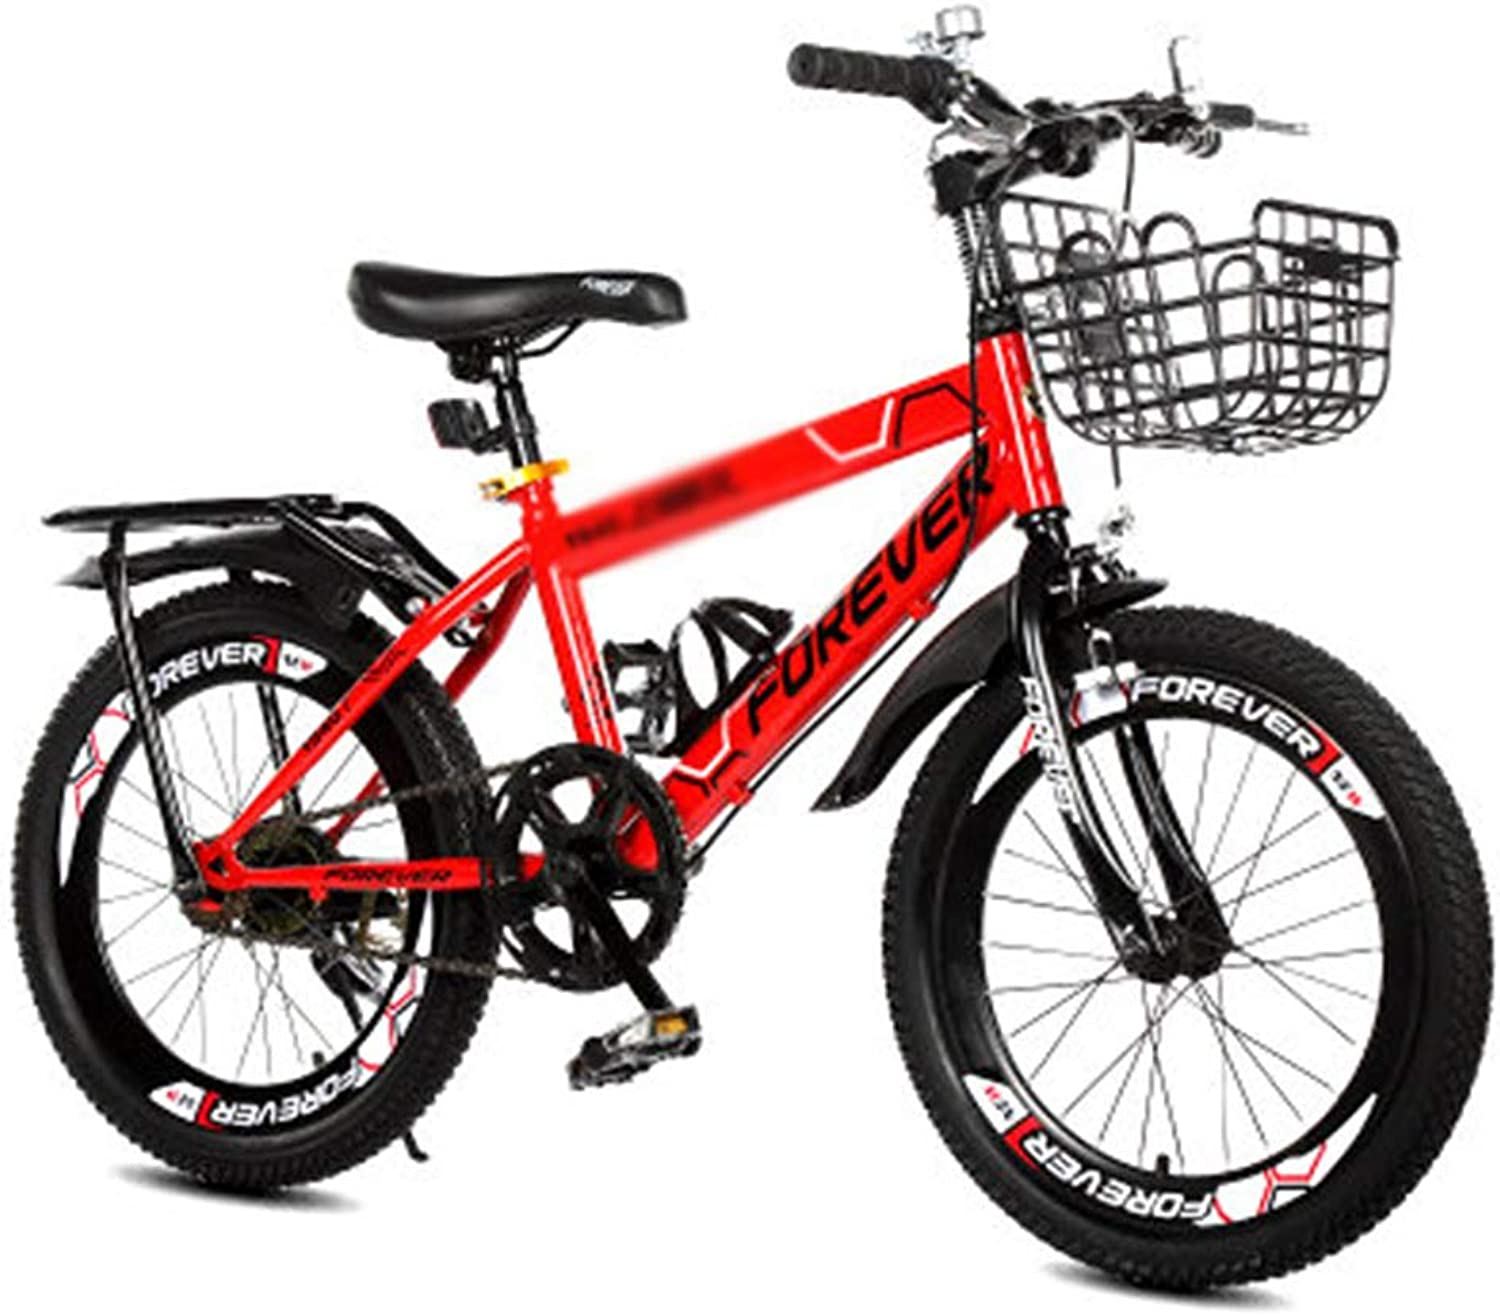 Kids' Bikes Bicycle Bicycle Single Speed Bike Boy Bike Girl Bike Student Bike, High Carbon Steel Frame, 18inches (color   Red, Size   18inches)